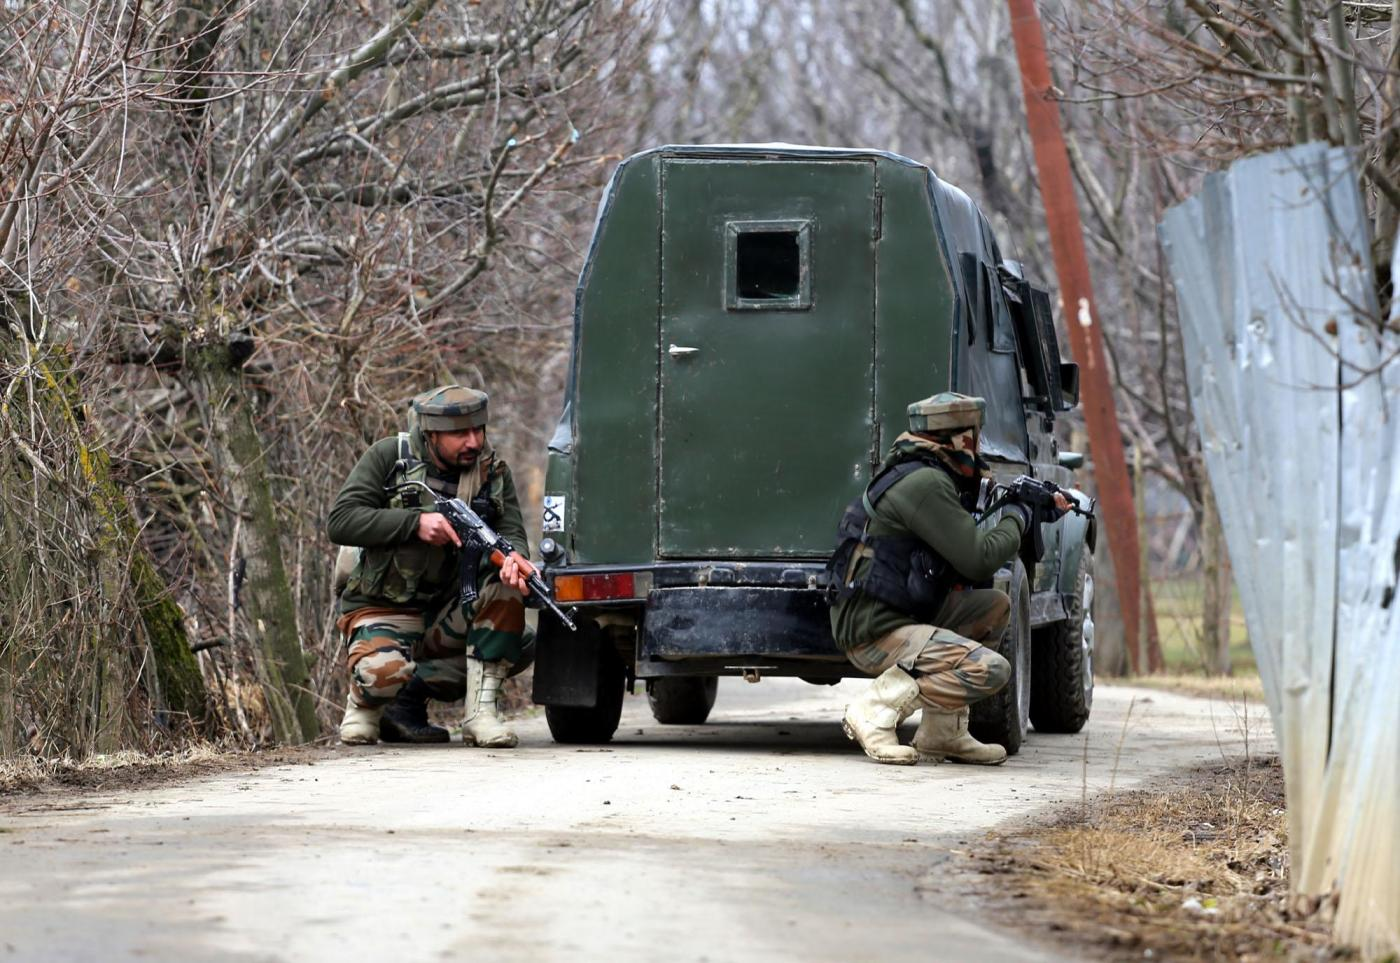 Sopore: Soldiers take position during a gun-battle with militants at Rehmatabad village in Jammu and Kashmir's Sopore district on Feb 21, 2015. Two foreign guerrillas belonging to the Lashkar-e-Taiba (LeT) group were killed in the encounter. (Photo: IANS) by .